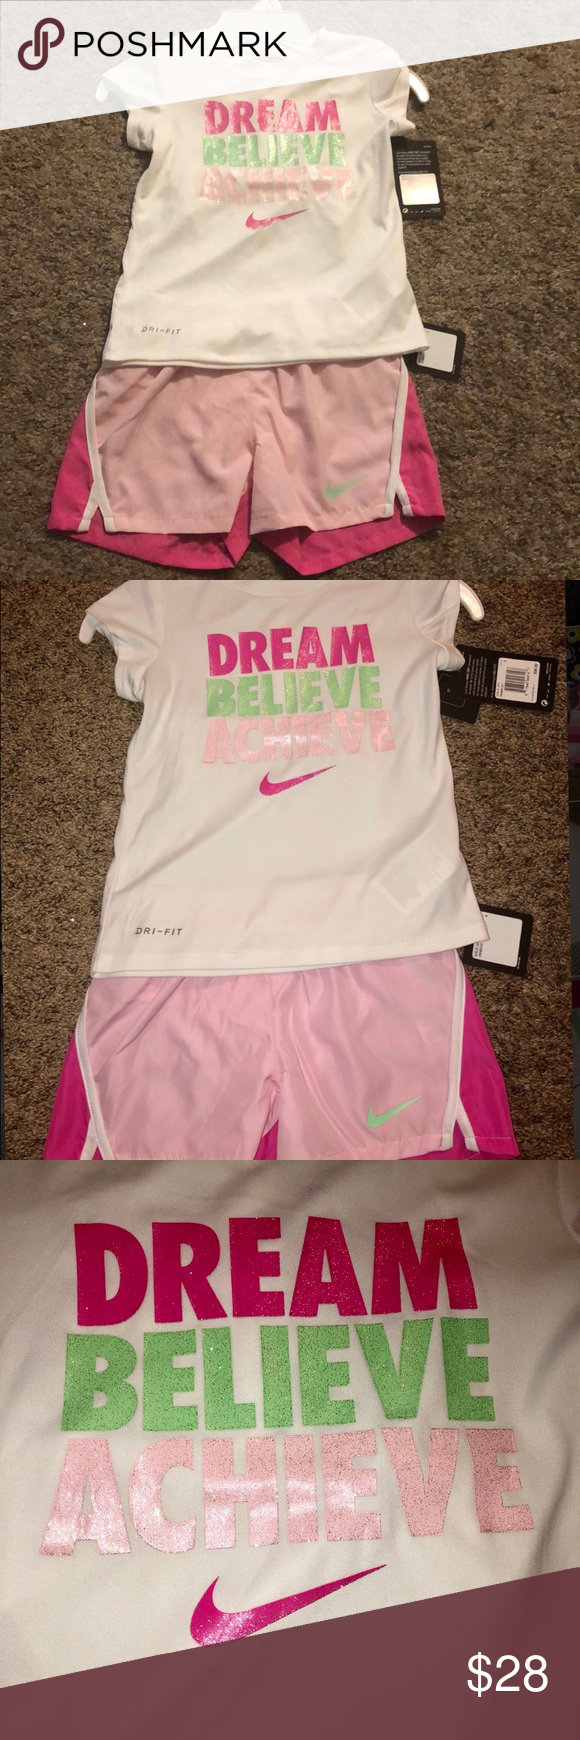 4c4a72e7 NWT Girl's Nike 2 Piece Set This is a NWT Nike outfit, size 5. I always  offer at least 10% off on the purchase of 2 or more listings.